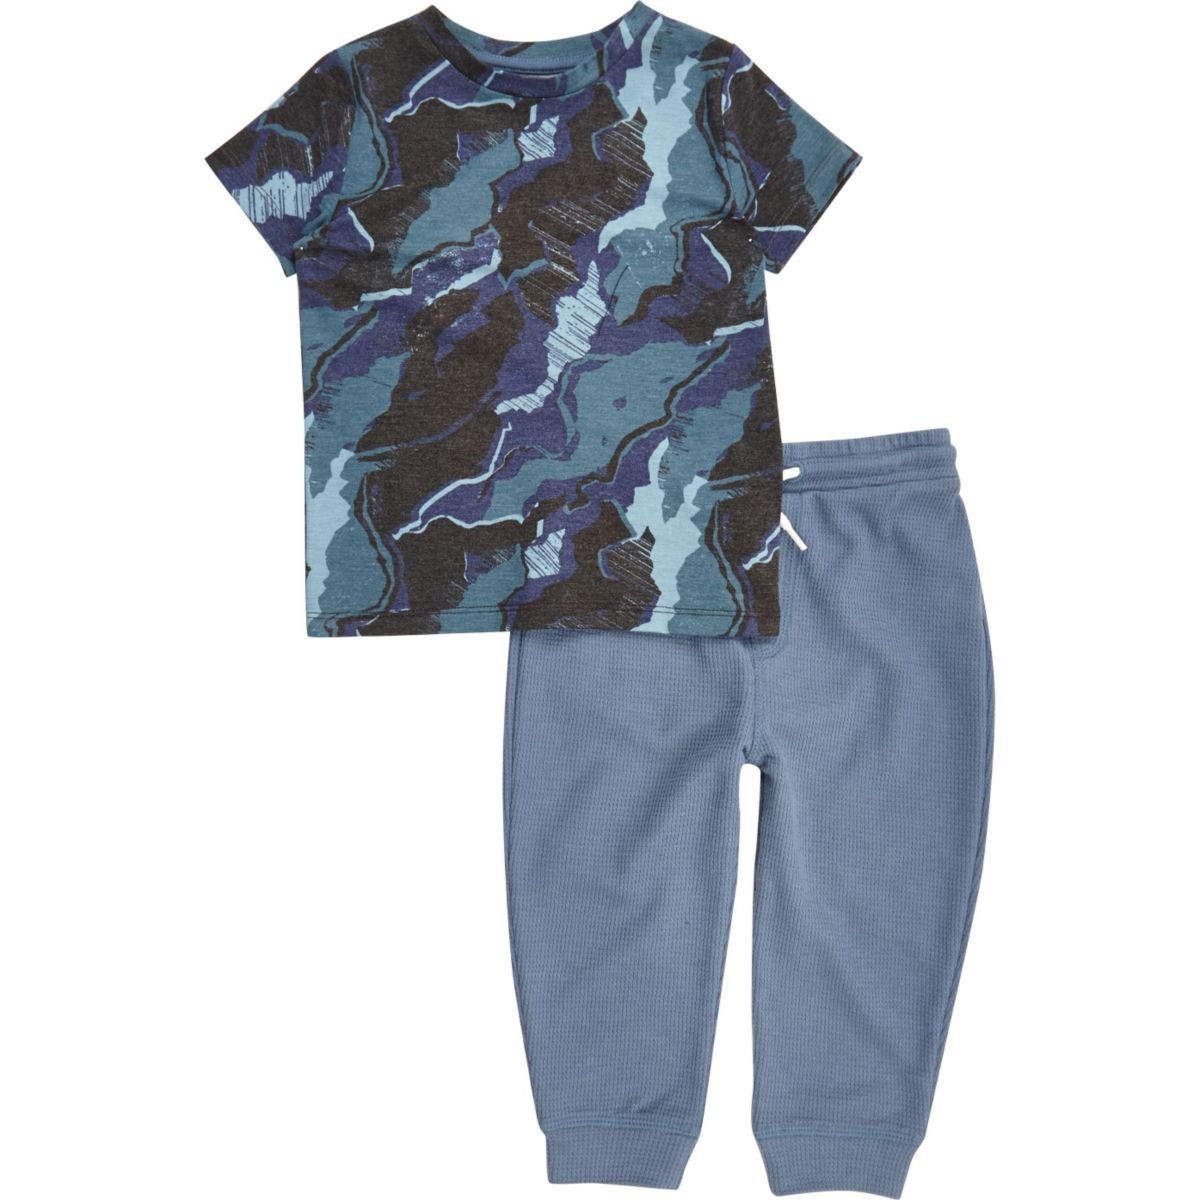 Mini boys blue camo pajama set